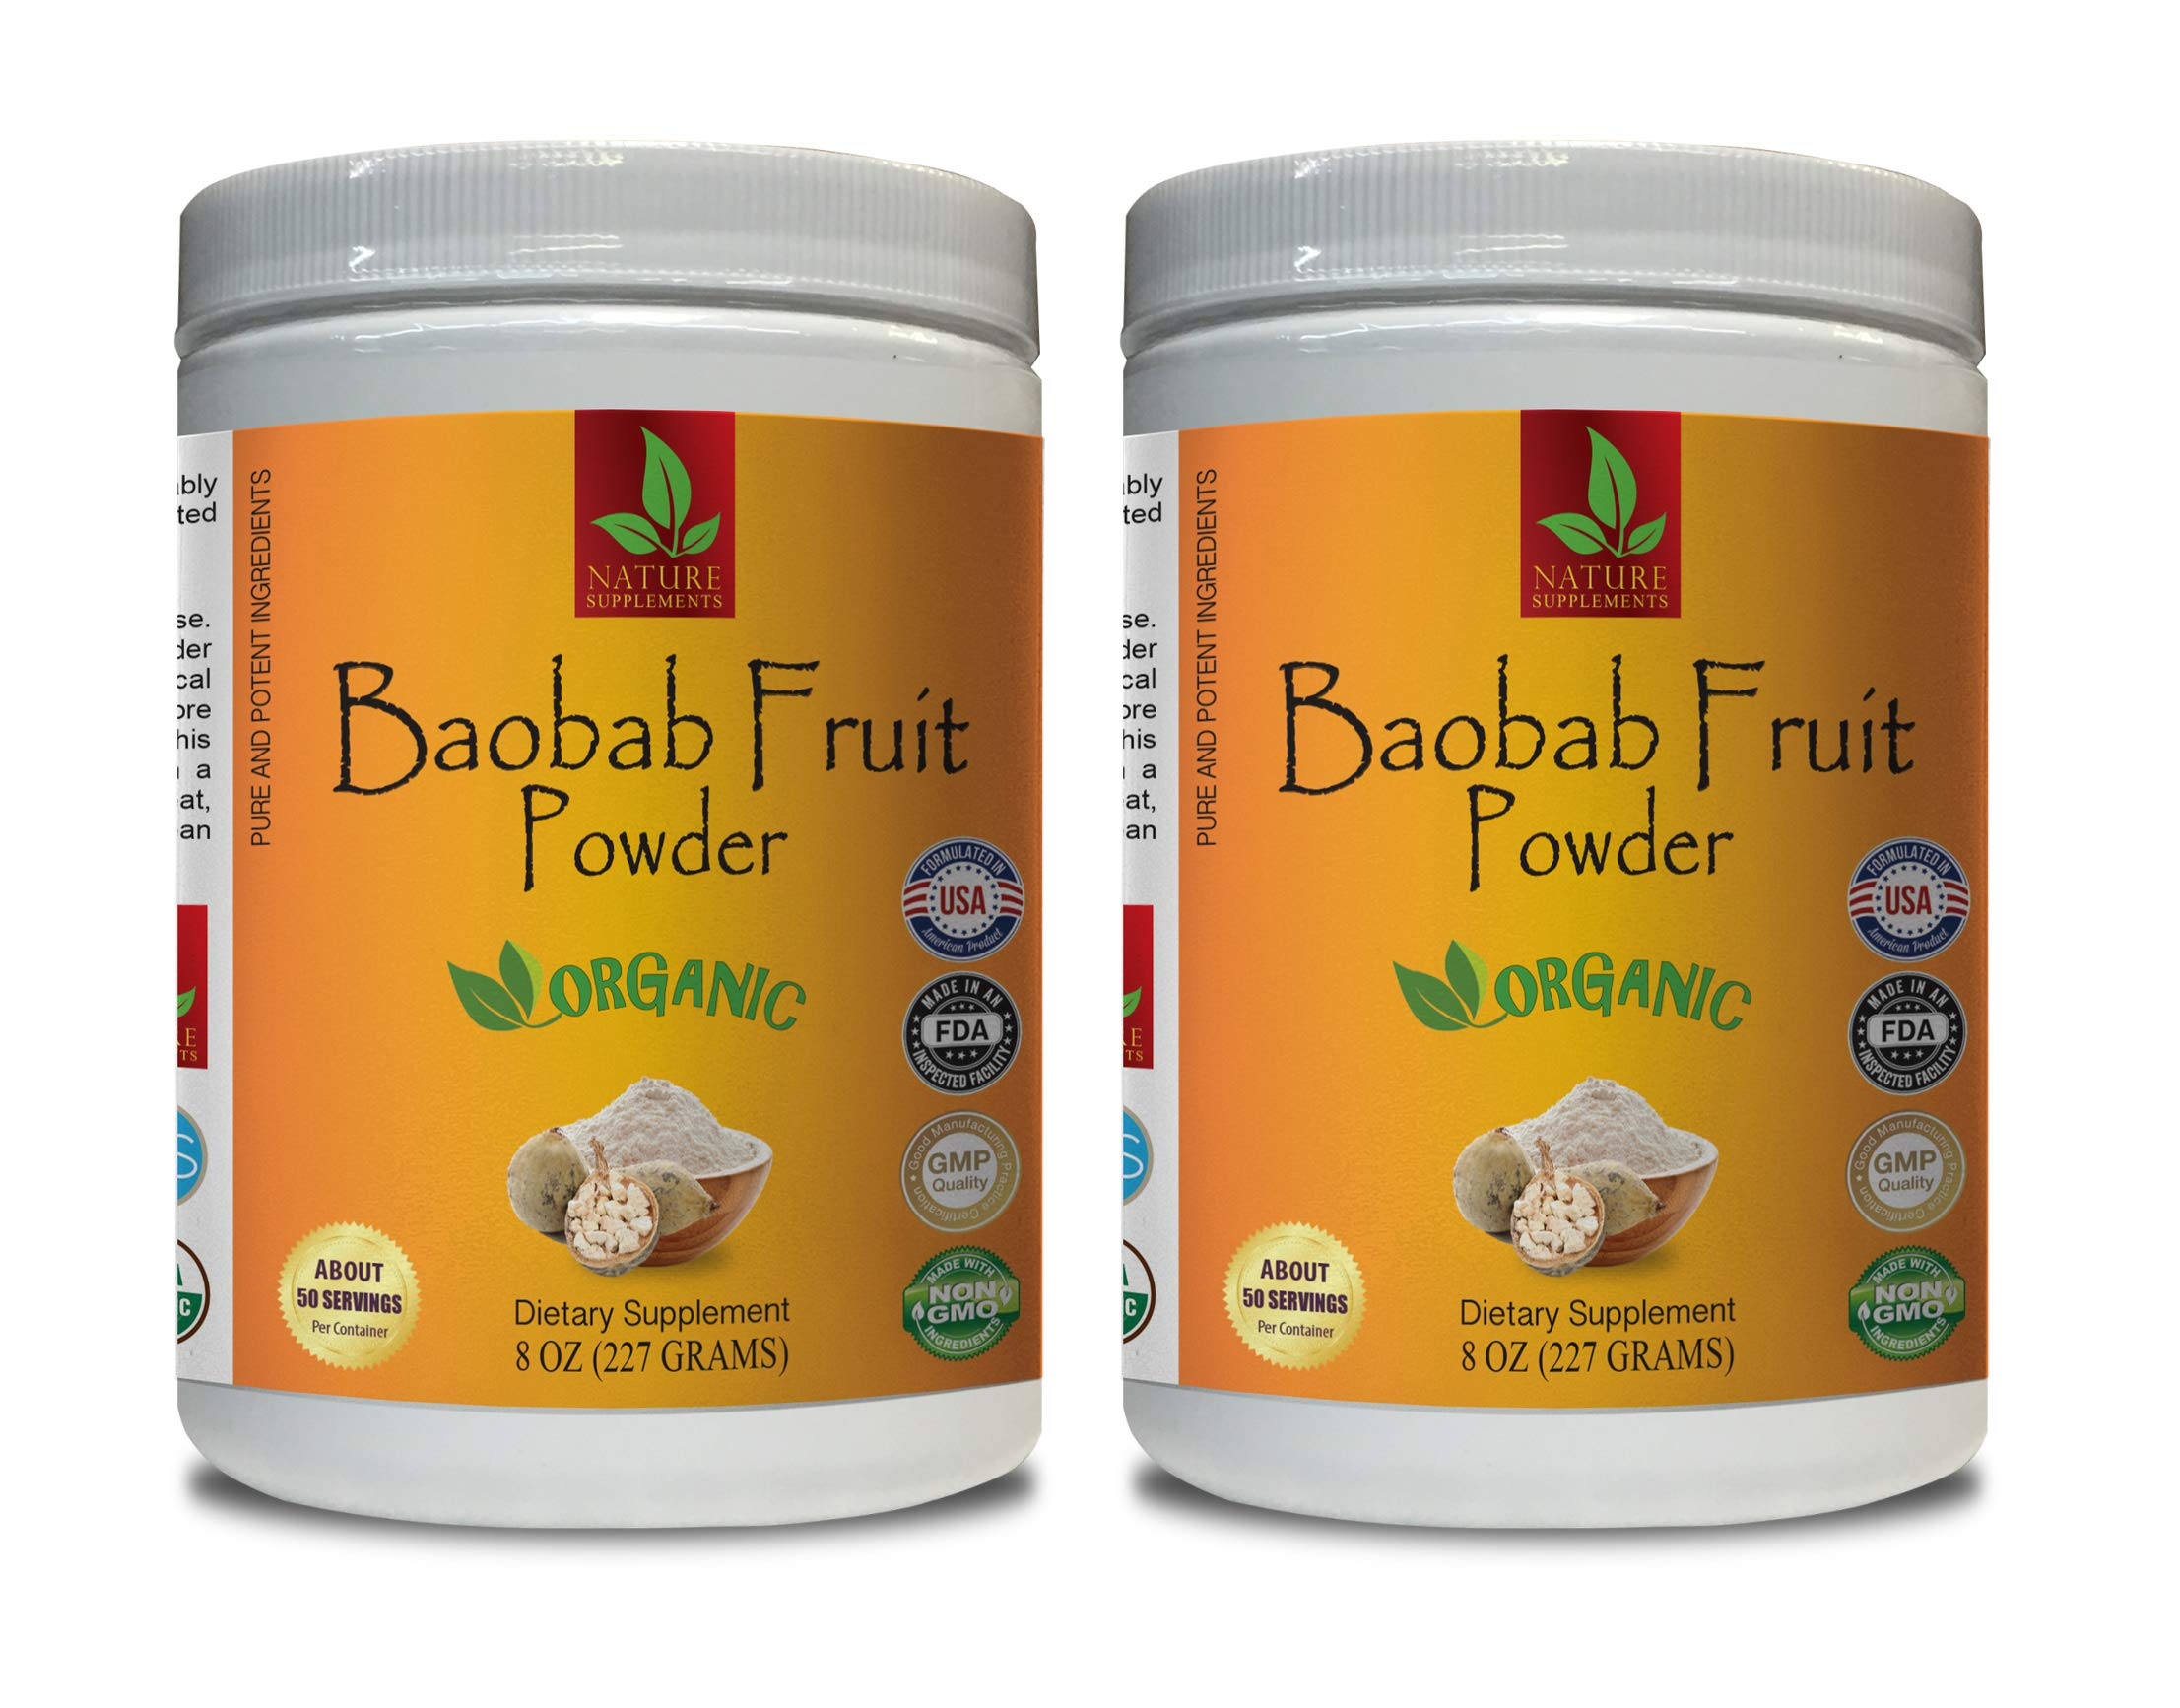 Immune Support Vitamins - Baobab Fruit Organic Powder - Pure and Potent Ingredients - Baobab Fruit Extract - 2 Cans 16 OZ (100 Servings)